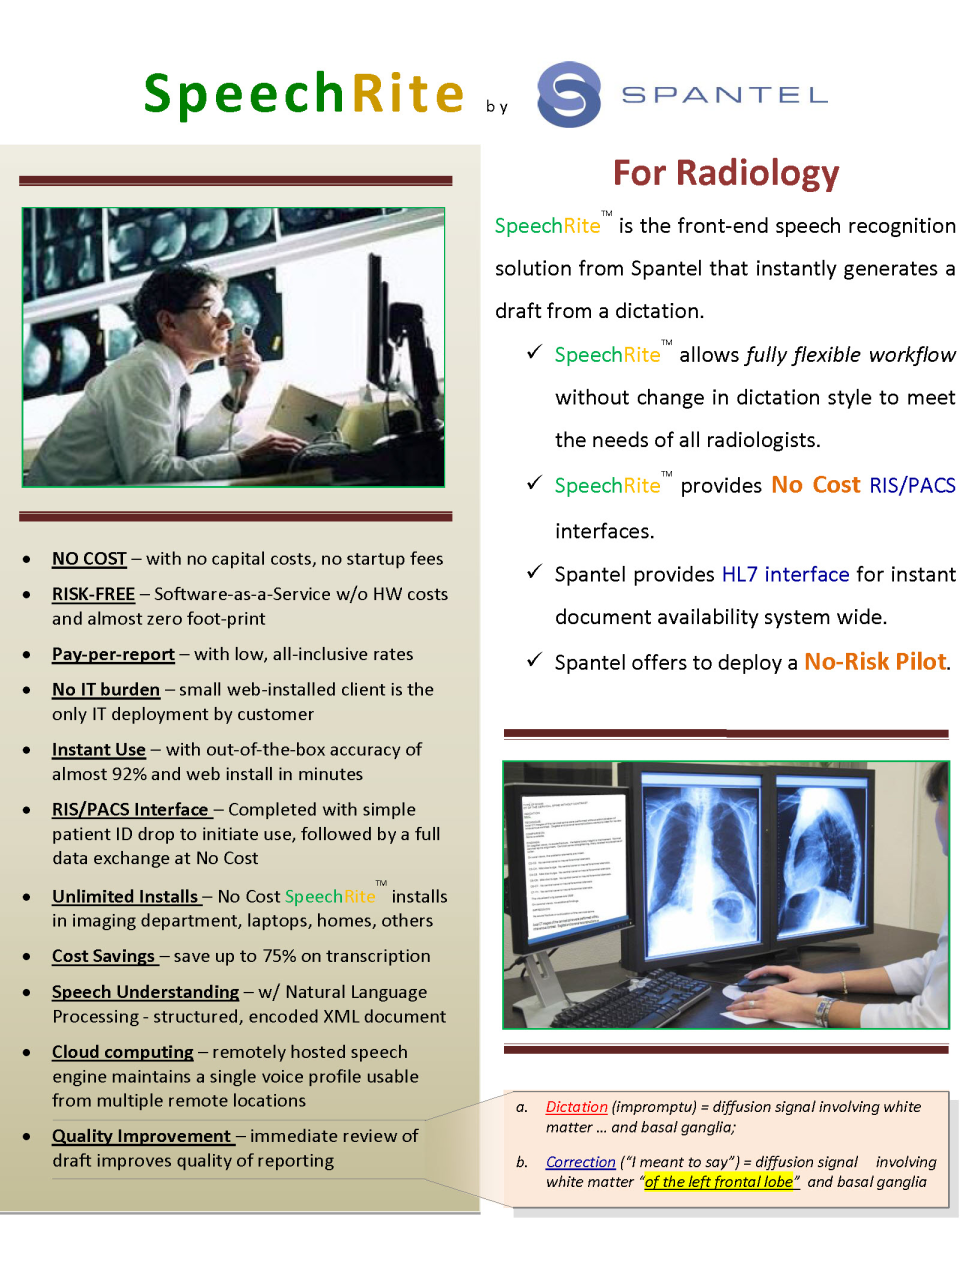 SpeechRite offers a flexible workflow for radiologists which supports all dictation preferences